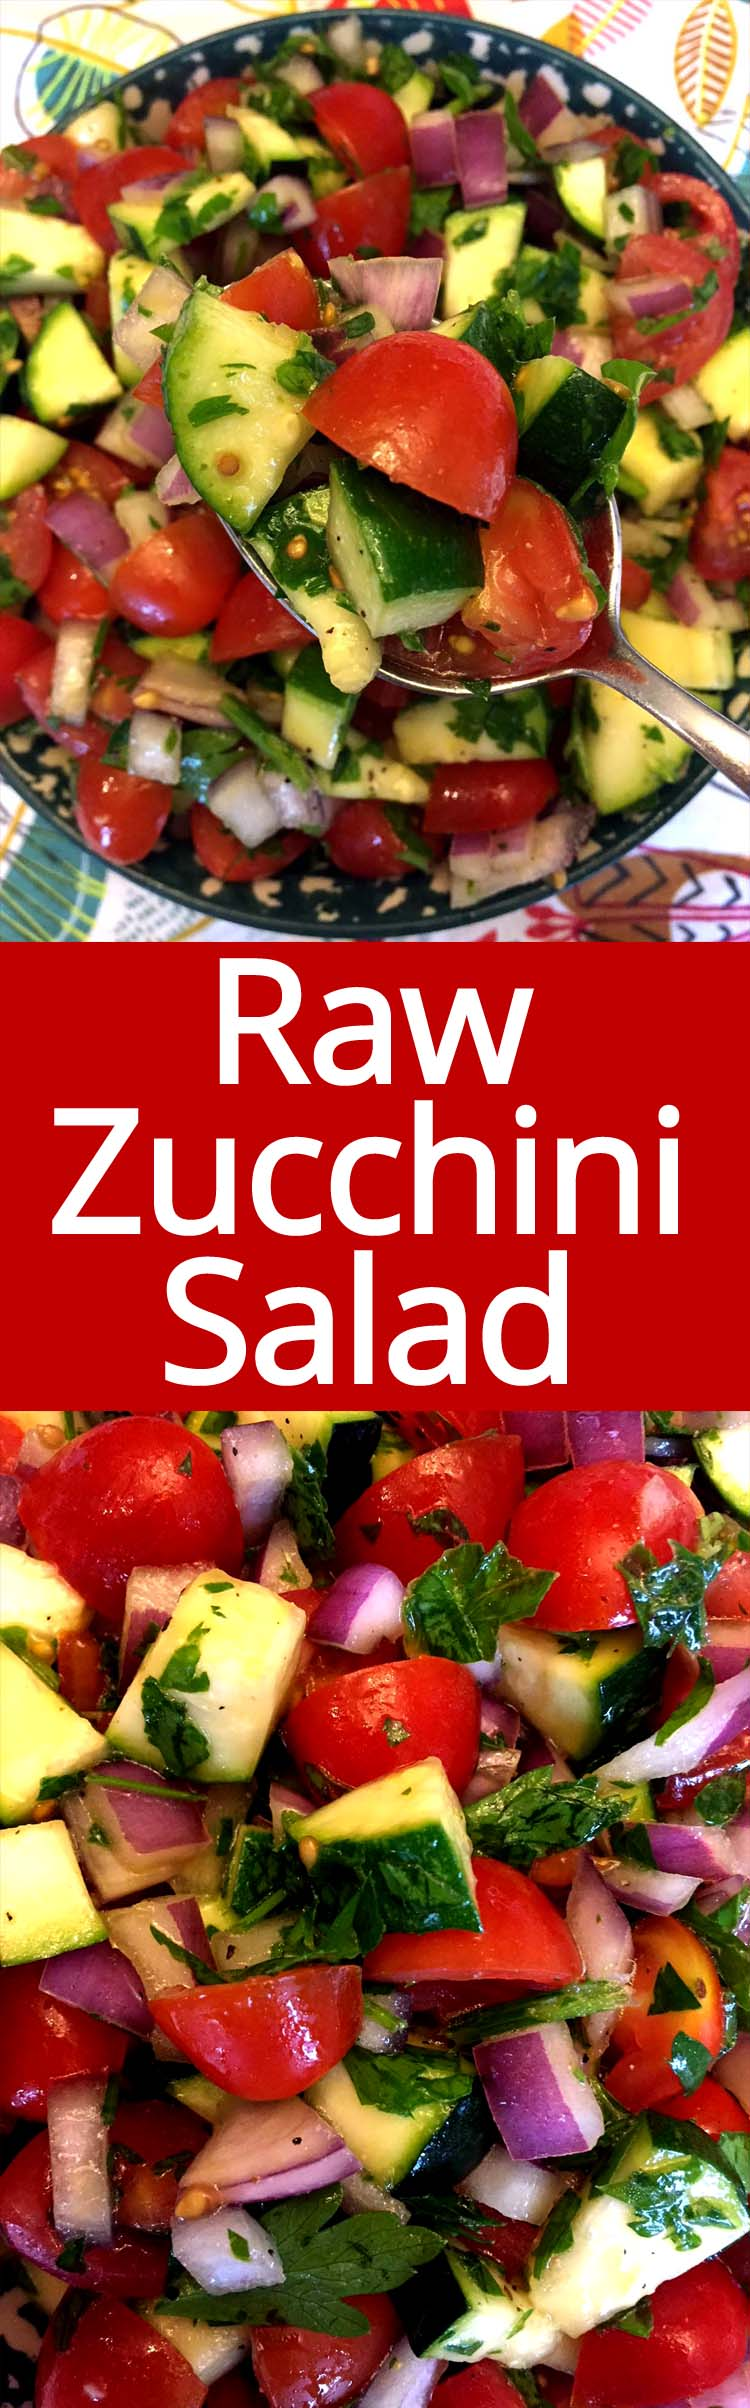 This raw zucchini tomato salad is amazing! So healthy, refreshing and delicious! I make a huge batch of it and it's stays fresh for up to 5 days in a refrigerator!